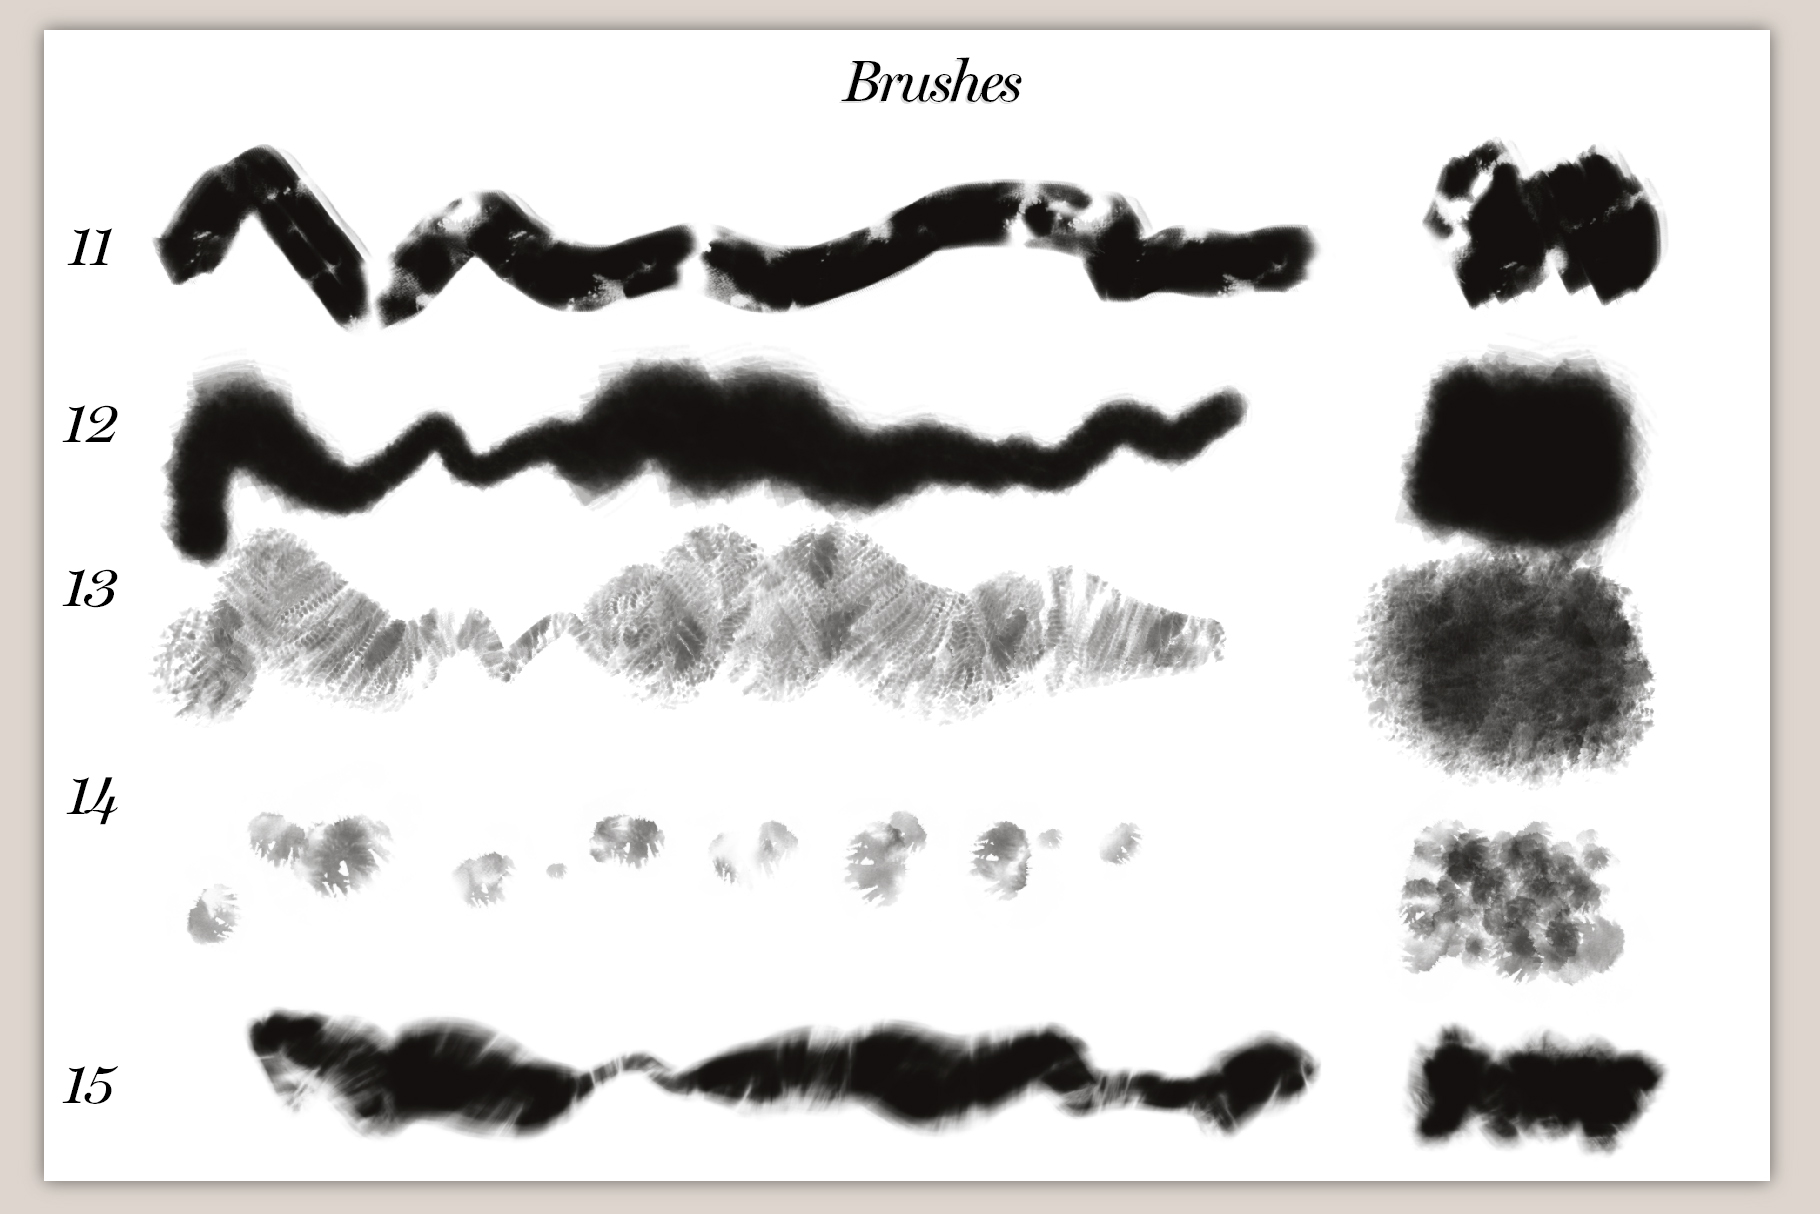 40 Artistic Painting Brushes for Procreate example image 5